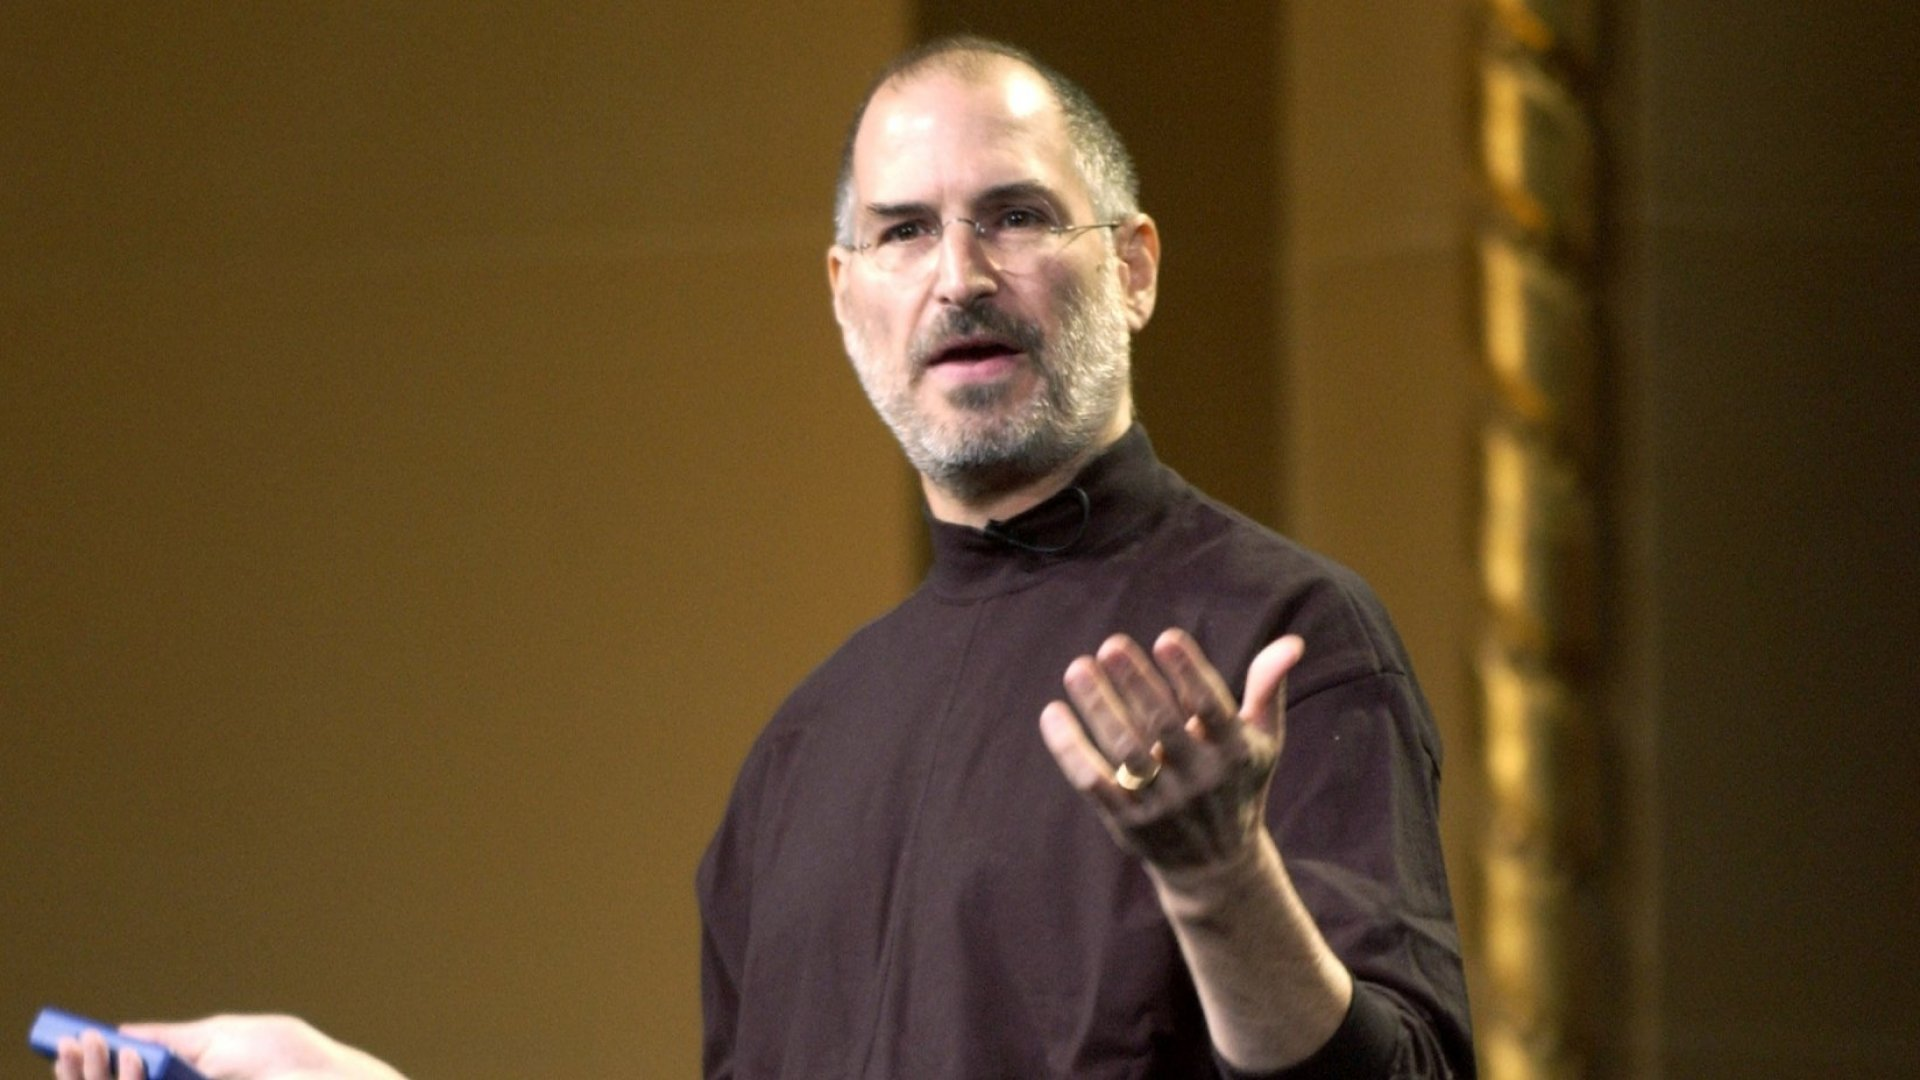 Steve Jobs Made This Notable Mistake as a Manager (but You Can Avoid It)